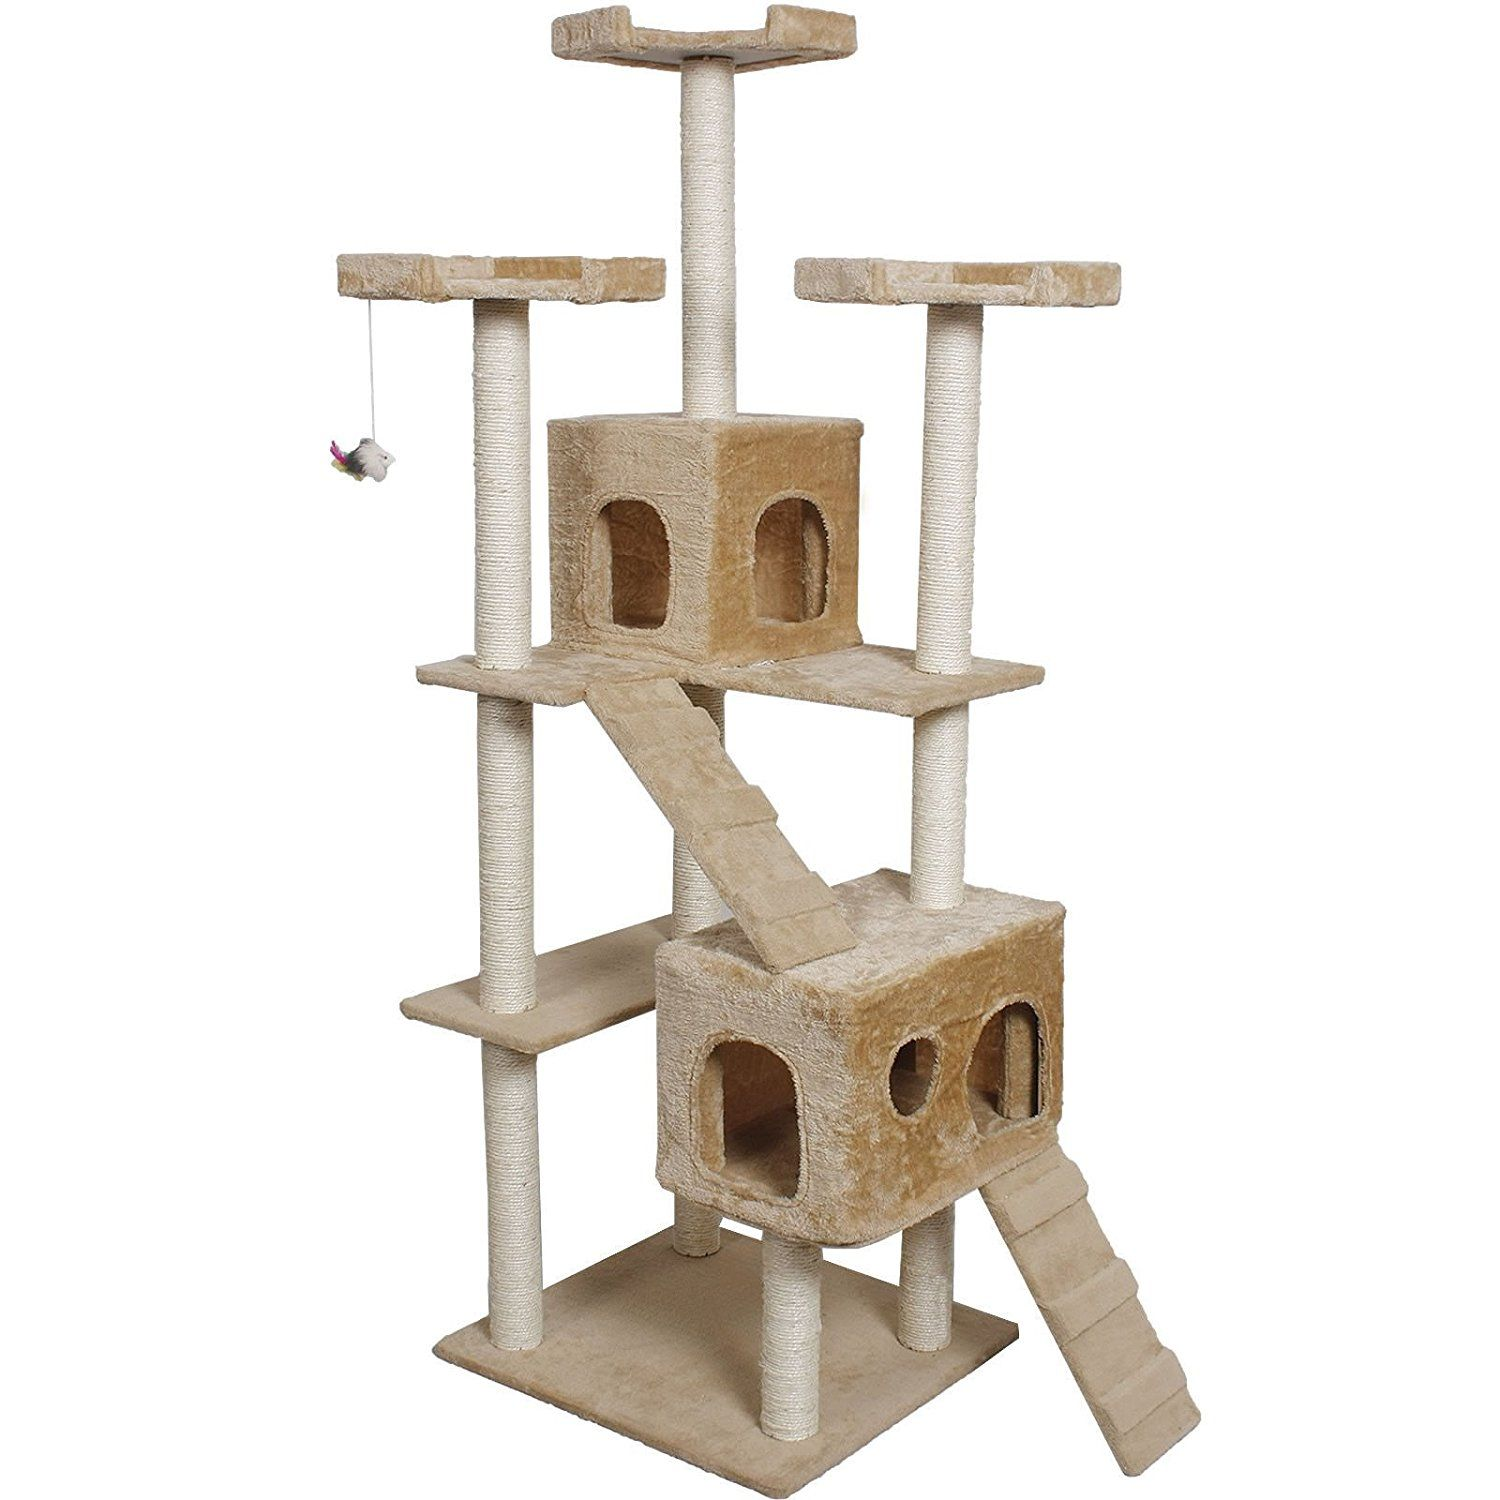 73u0027 Cat Kitty Tree Tower Condo Furniture Scratch Post Pet House Toy Bed  Beige